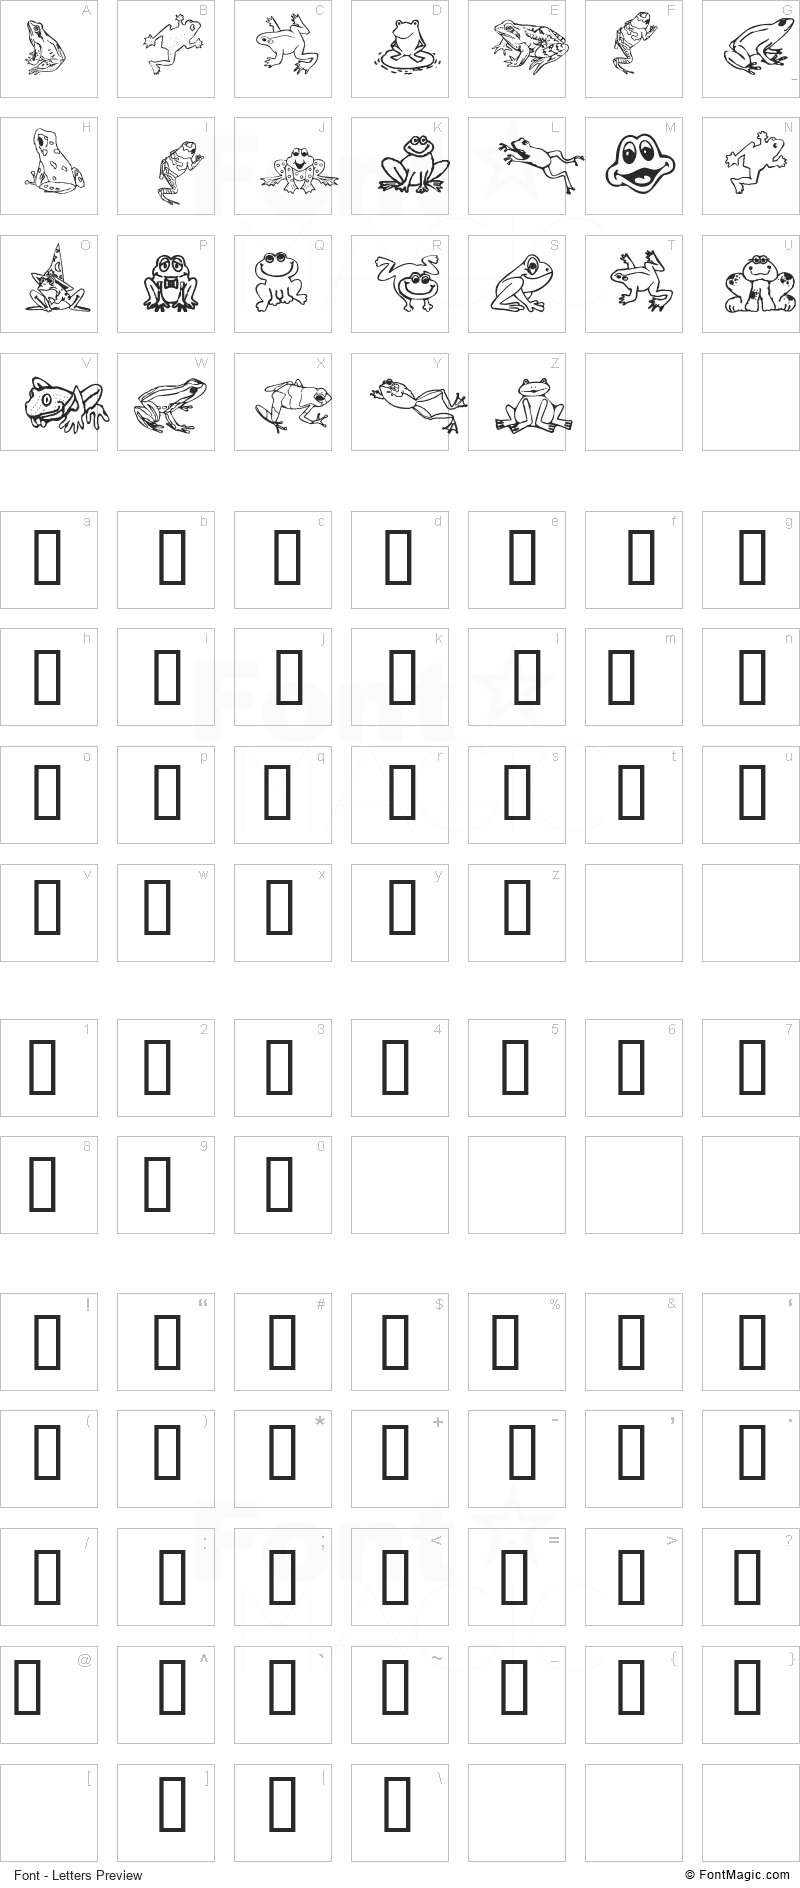 Amphibia Font - All Latters Preview Chart